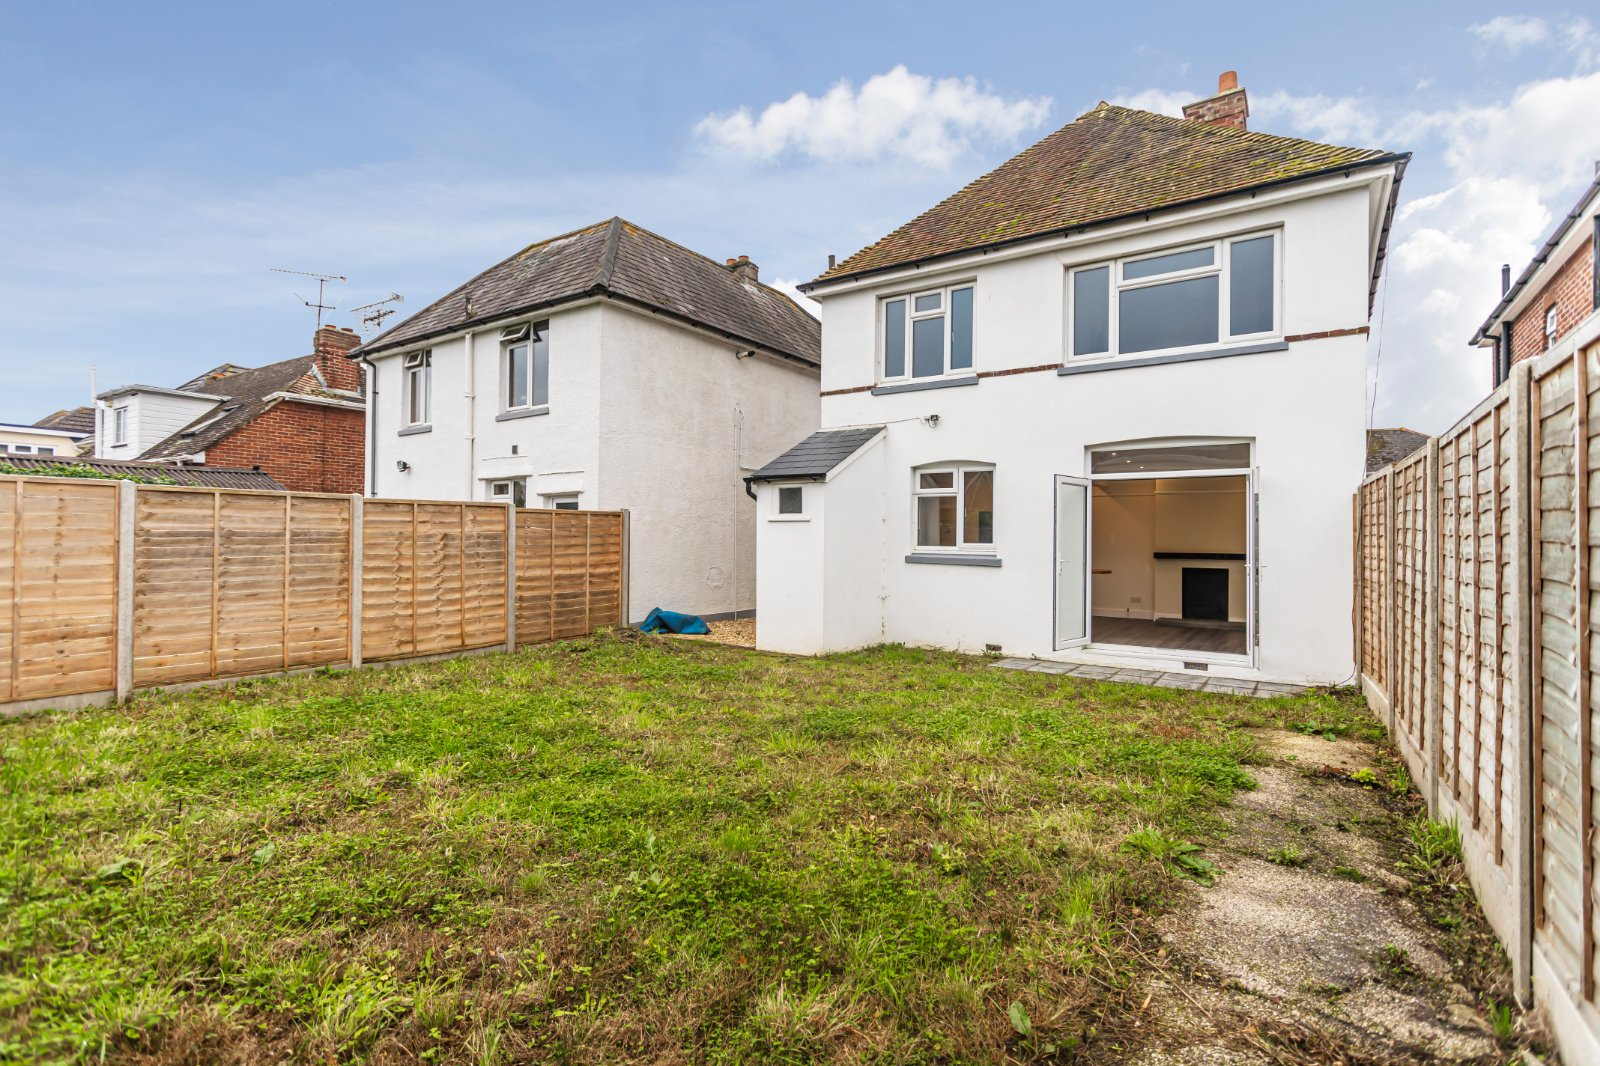 3 bed house for sale in Blandford Road, Poole - Property Image 1